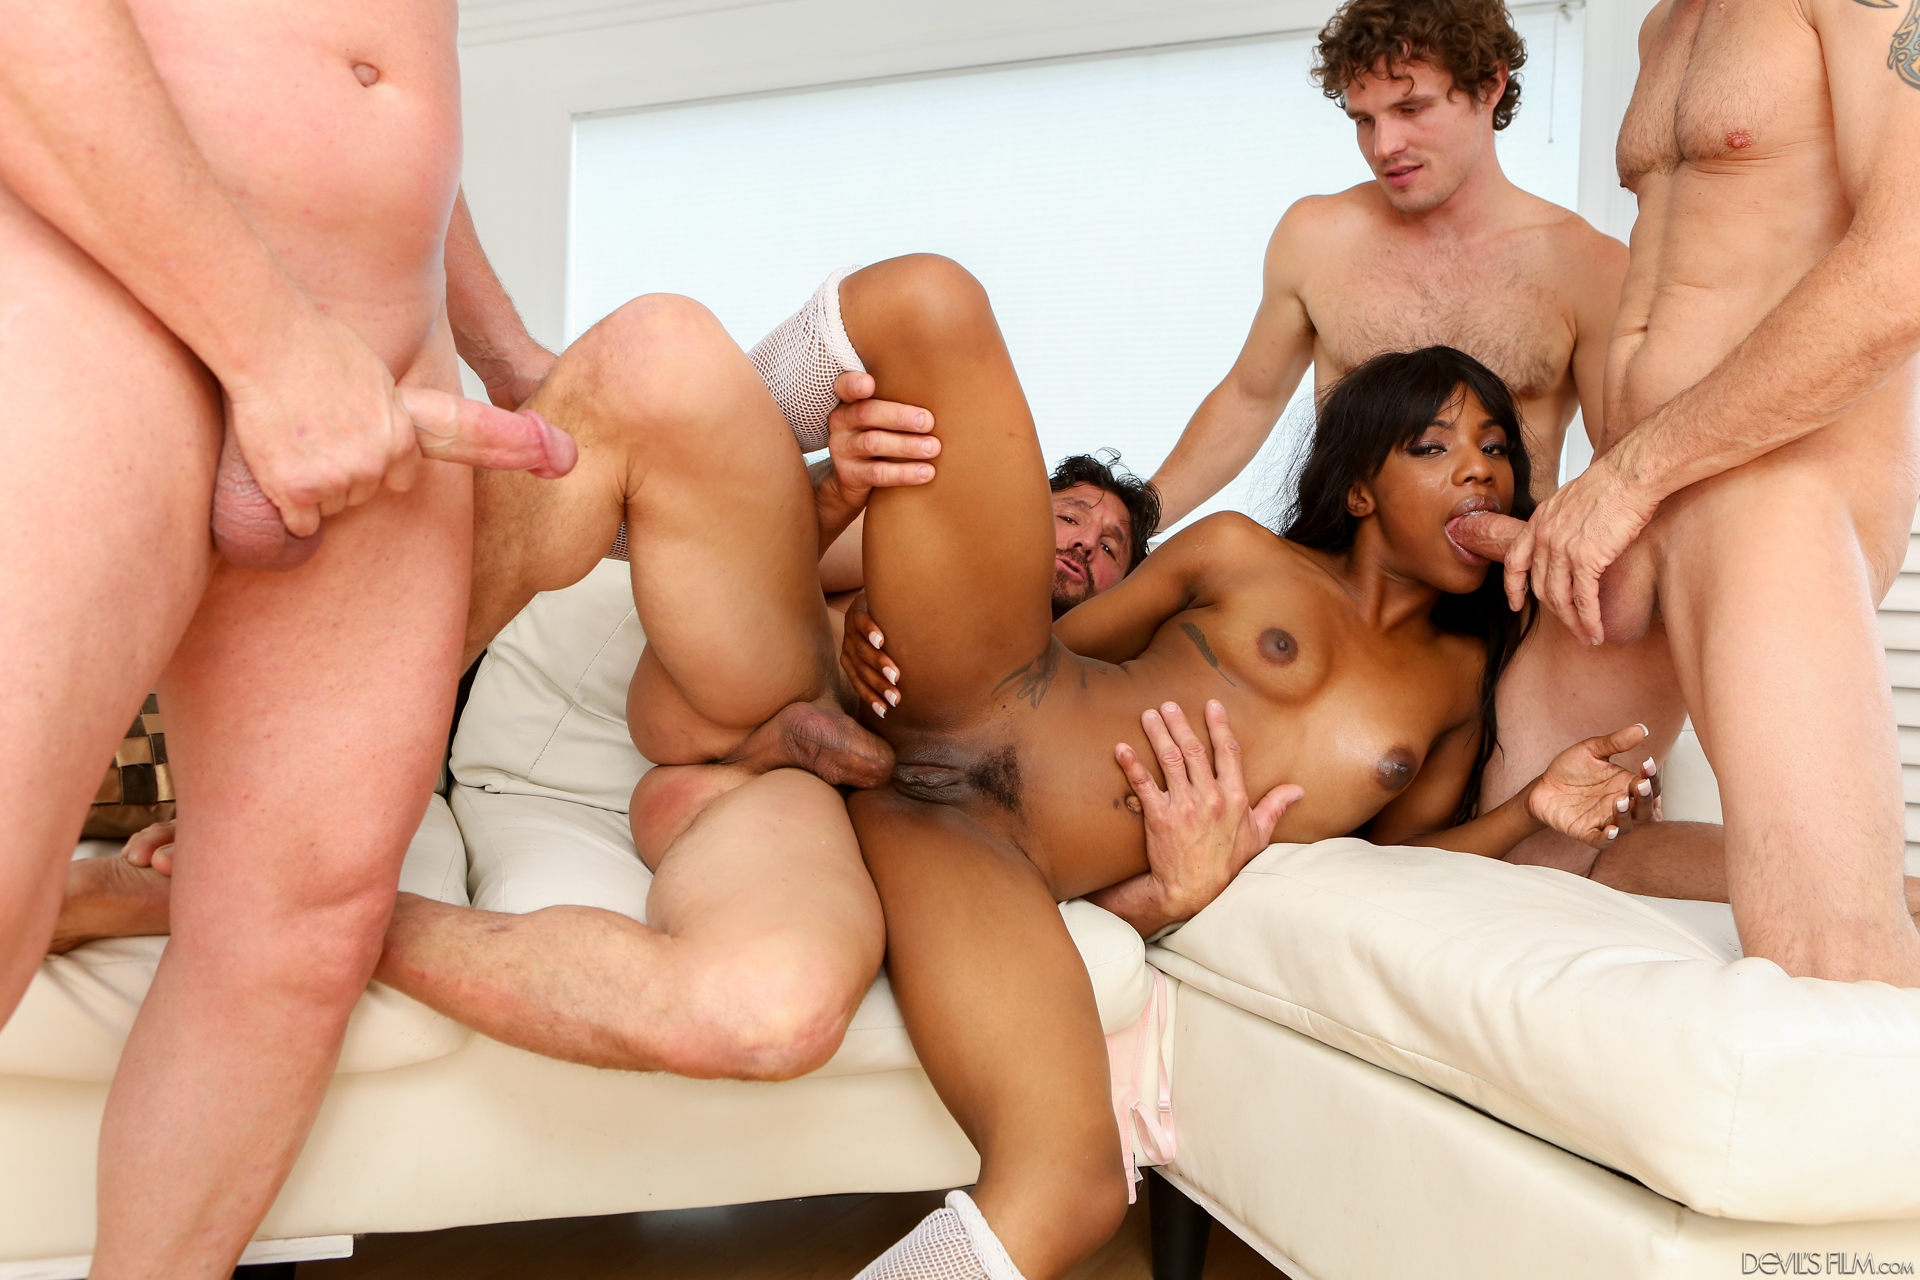 black girl white guy most sexy porn free hd 4k photos